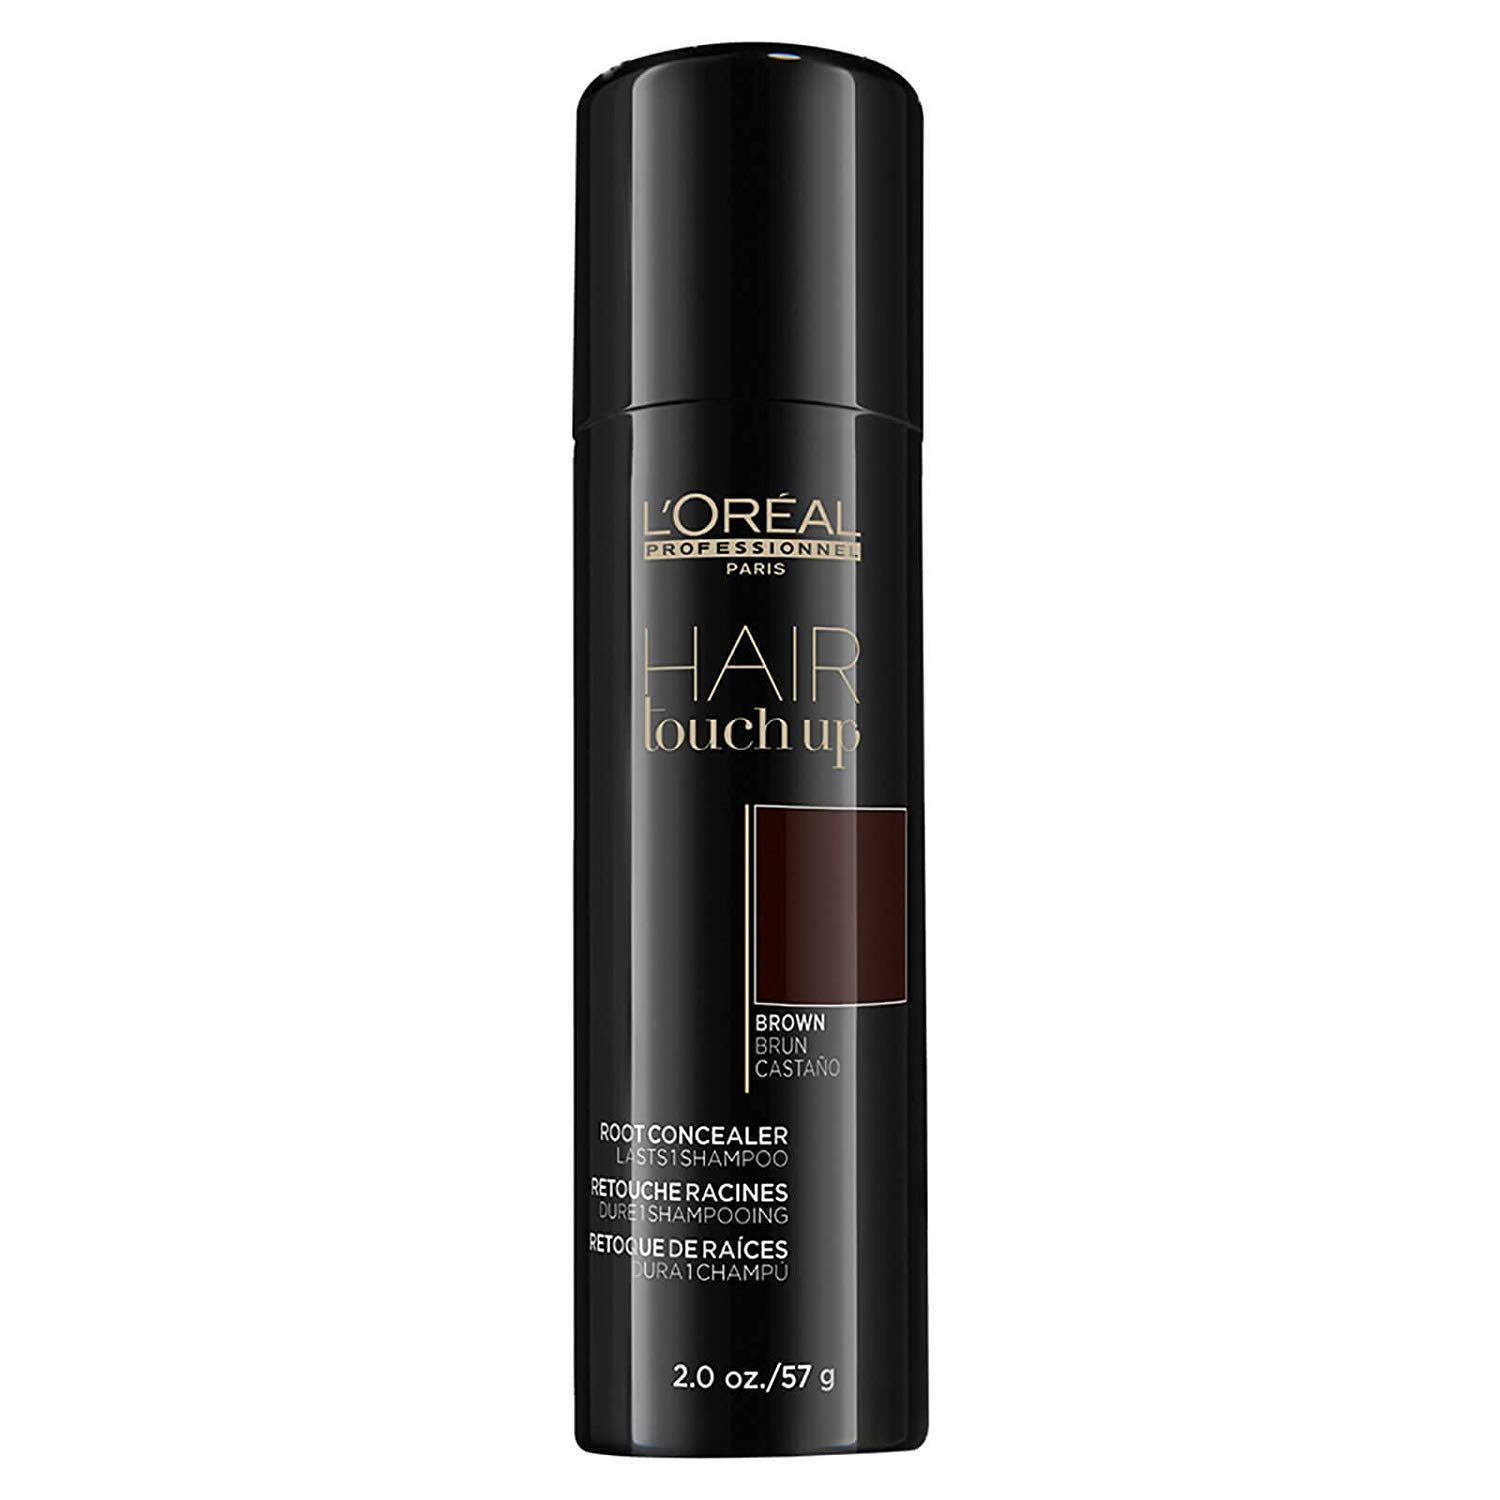 L'OREAL Hair Touch Up Root Concealer (Brown) 2.0 oz